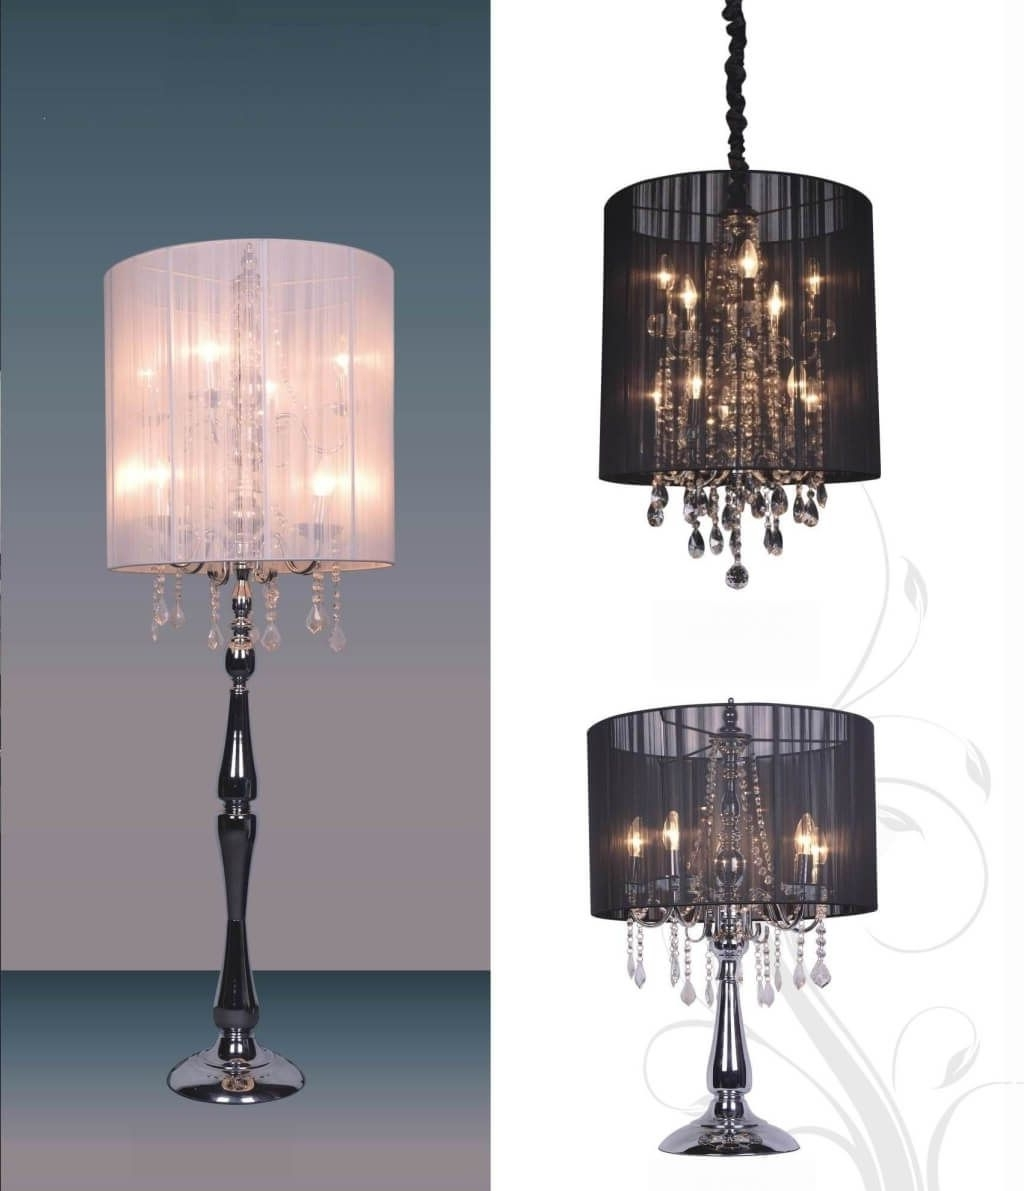 2019 Best Of Small Crystal Chandelier Table Lamps